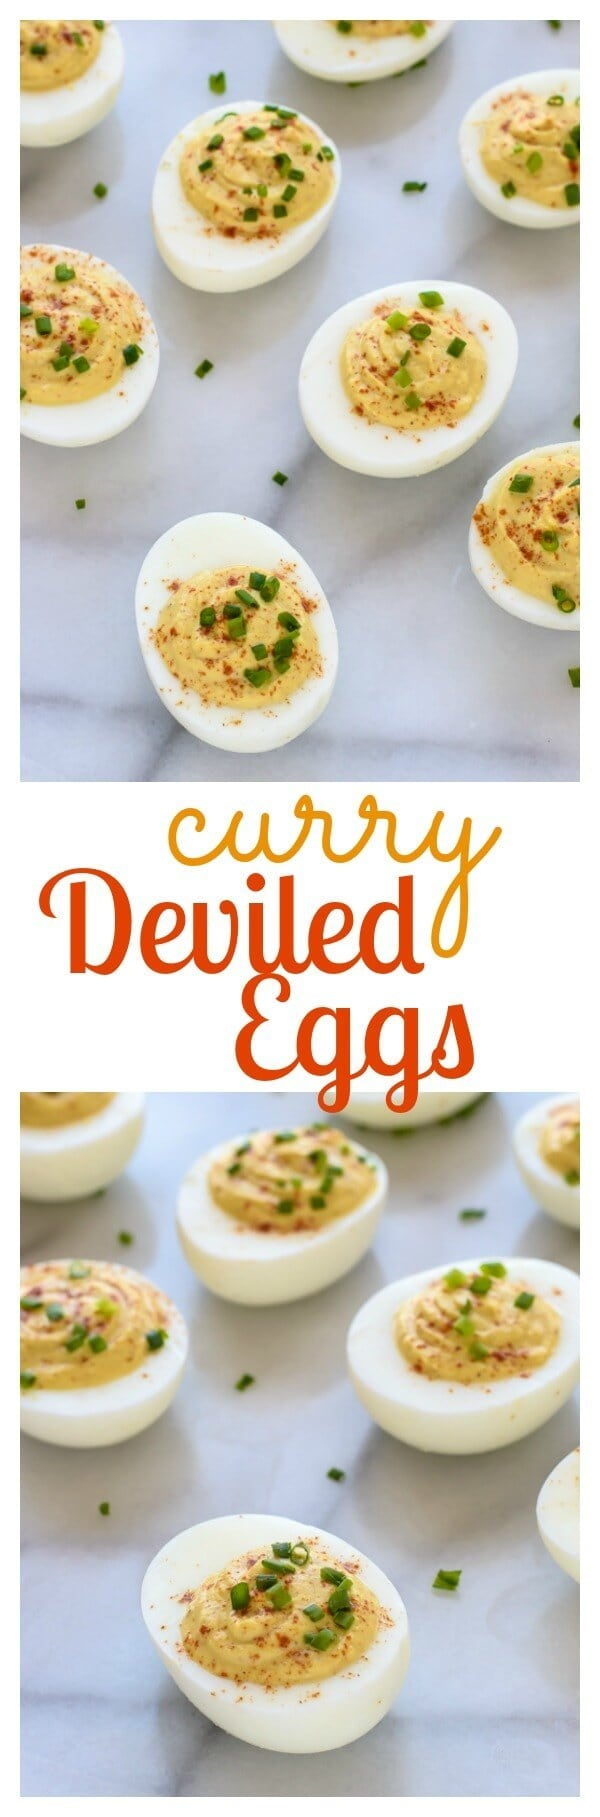 Curried Deviled Eggs. A yummy spin on classic deviled eggs that are a hit at any party!